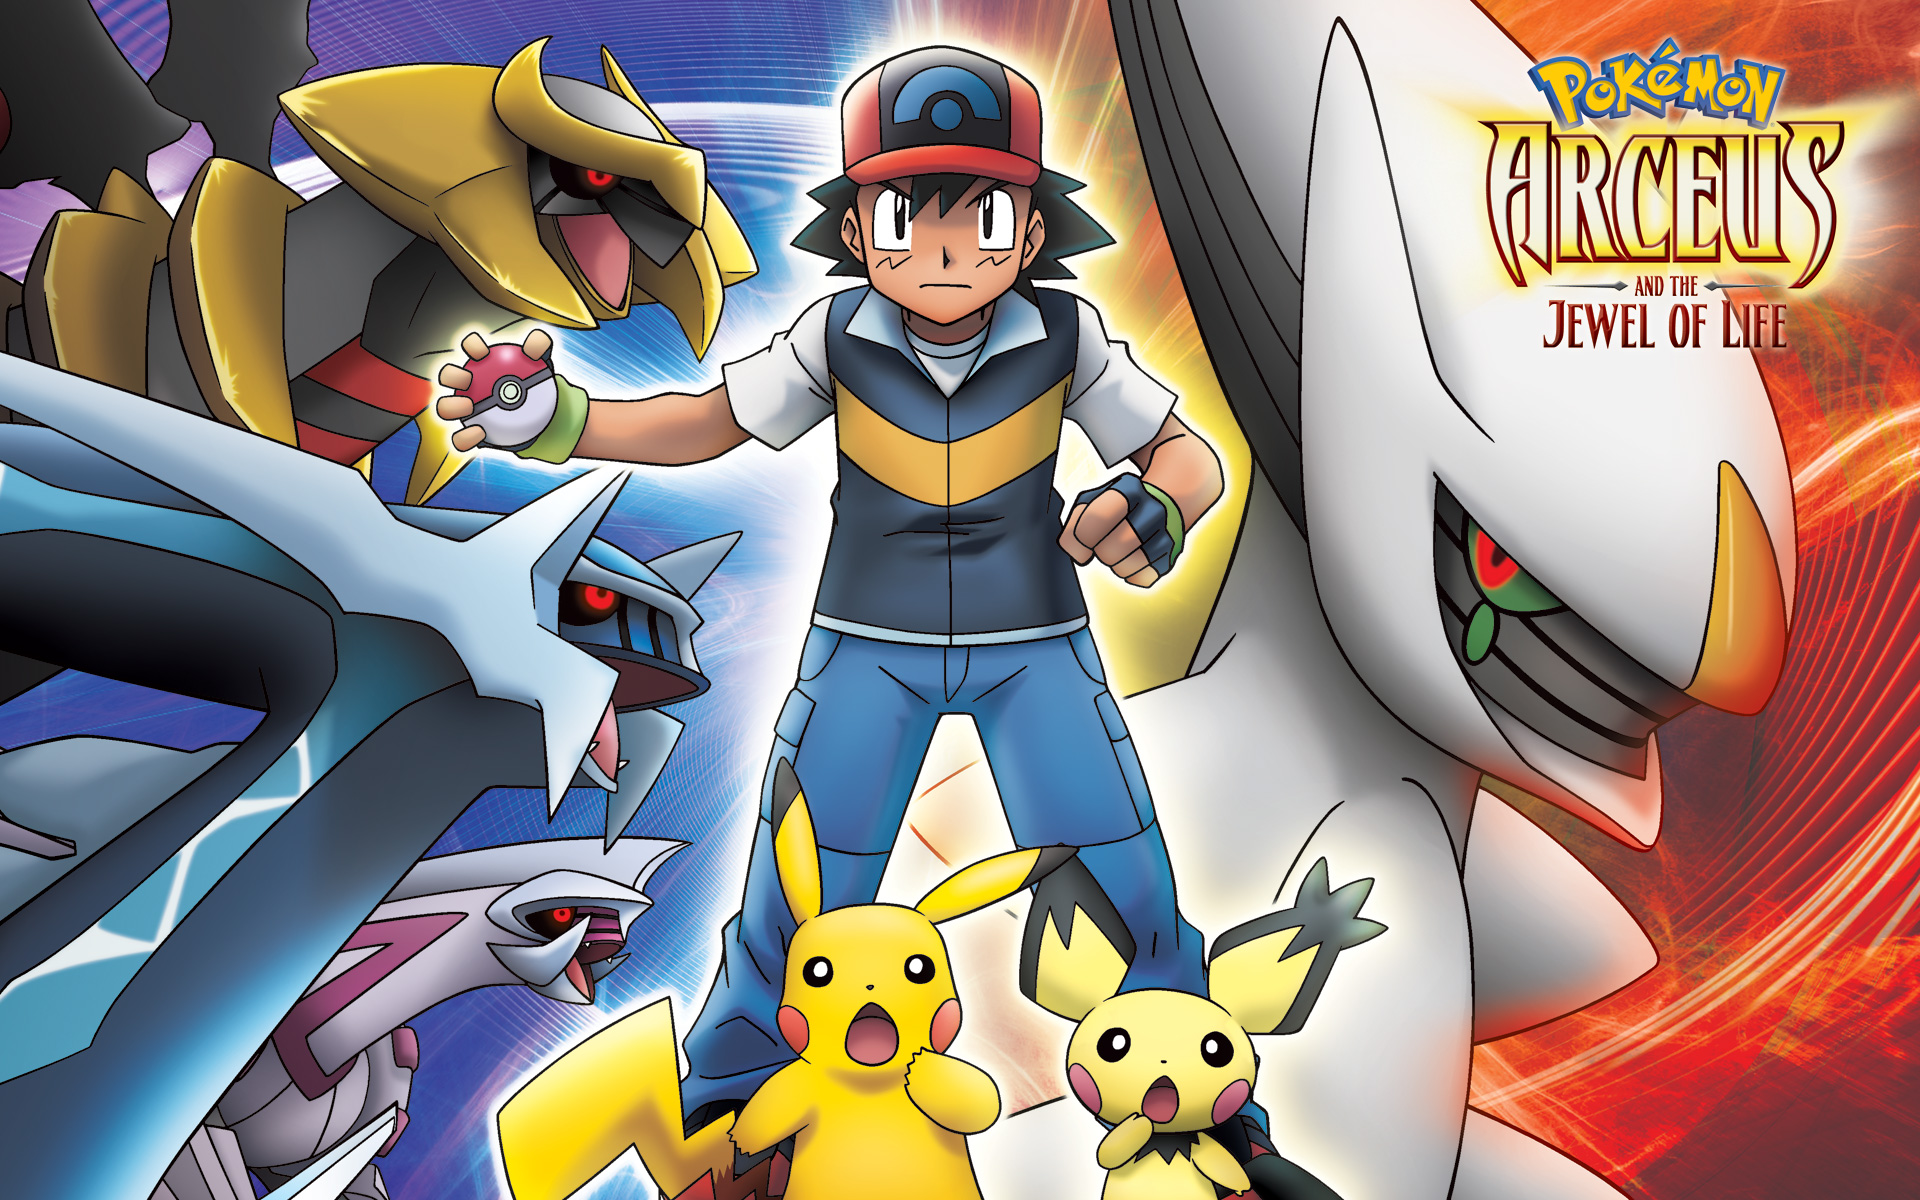 Wallpaper download pokemon - Pokemon Pikachu Wallpaper 1920x1200 Pokemon Pikachu Ash Ketchum